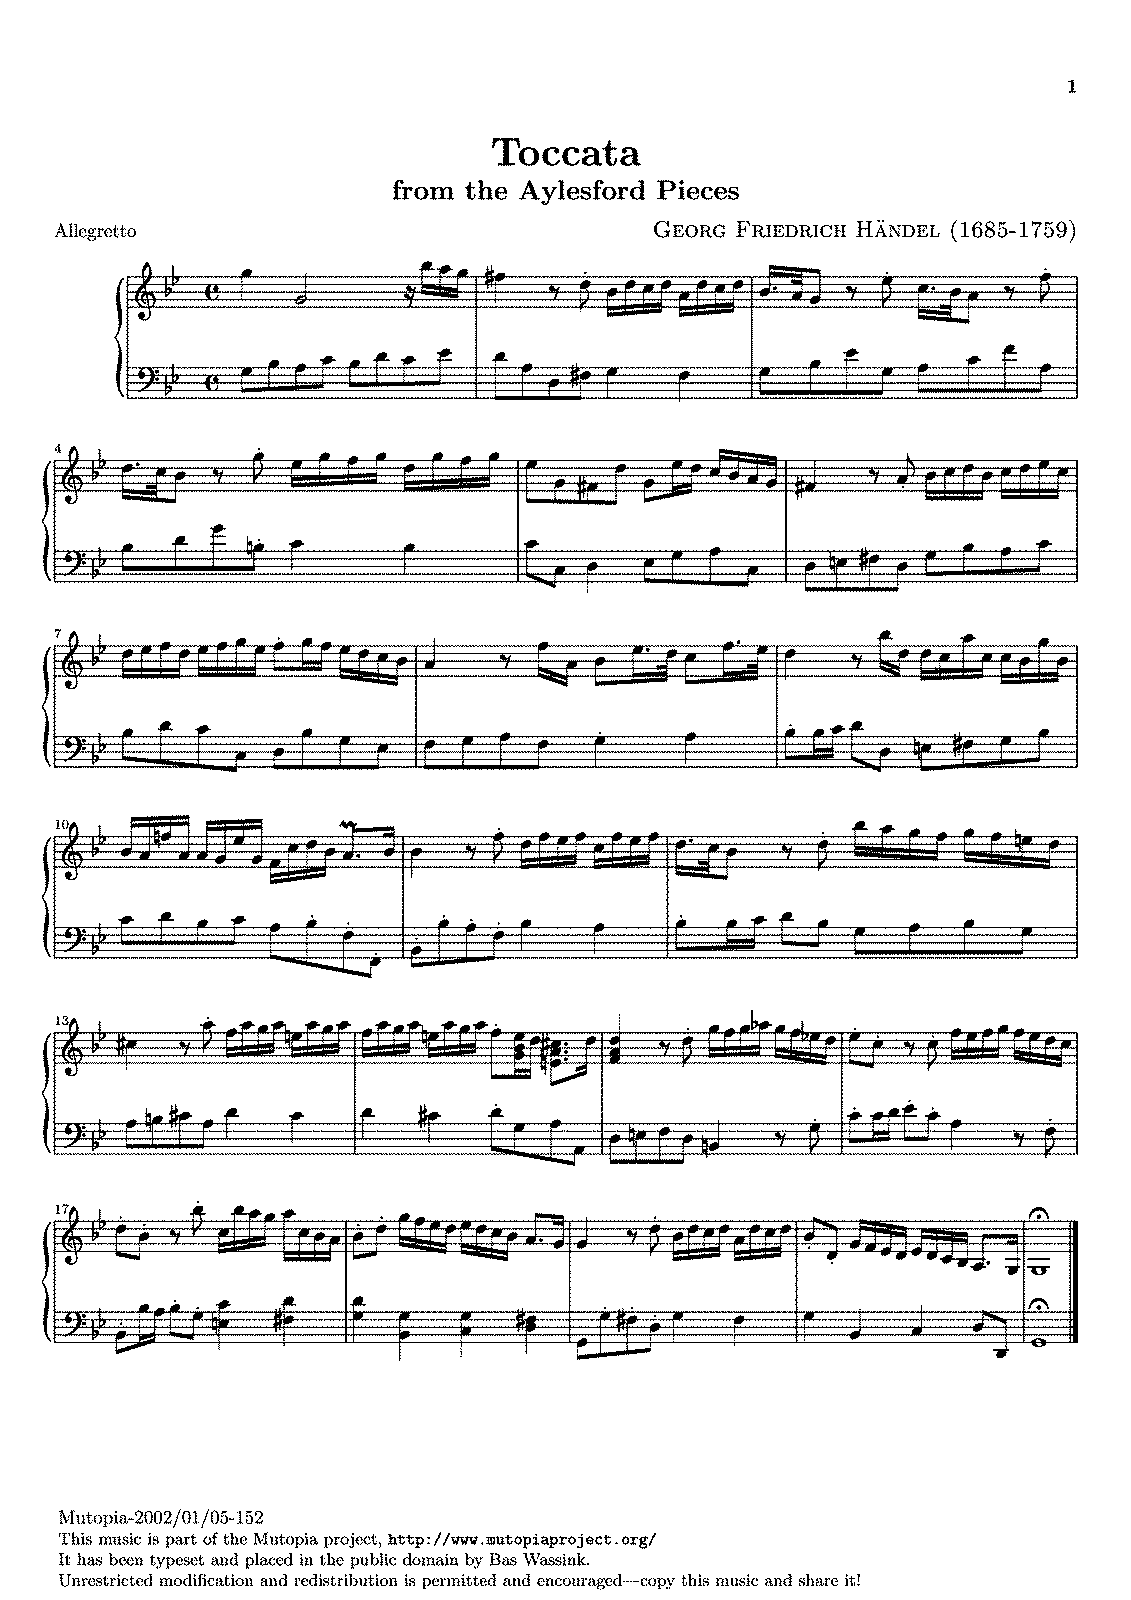 Handel - Aylseford Pieces, No.4 Toccata (tpst).pdf